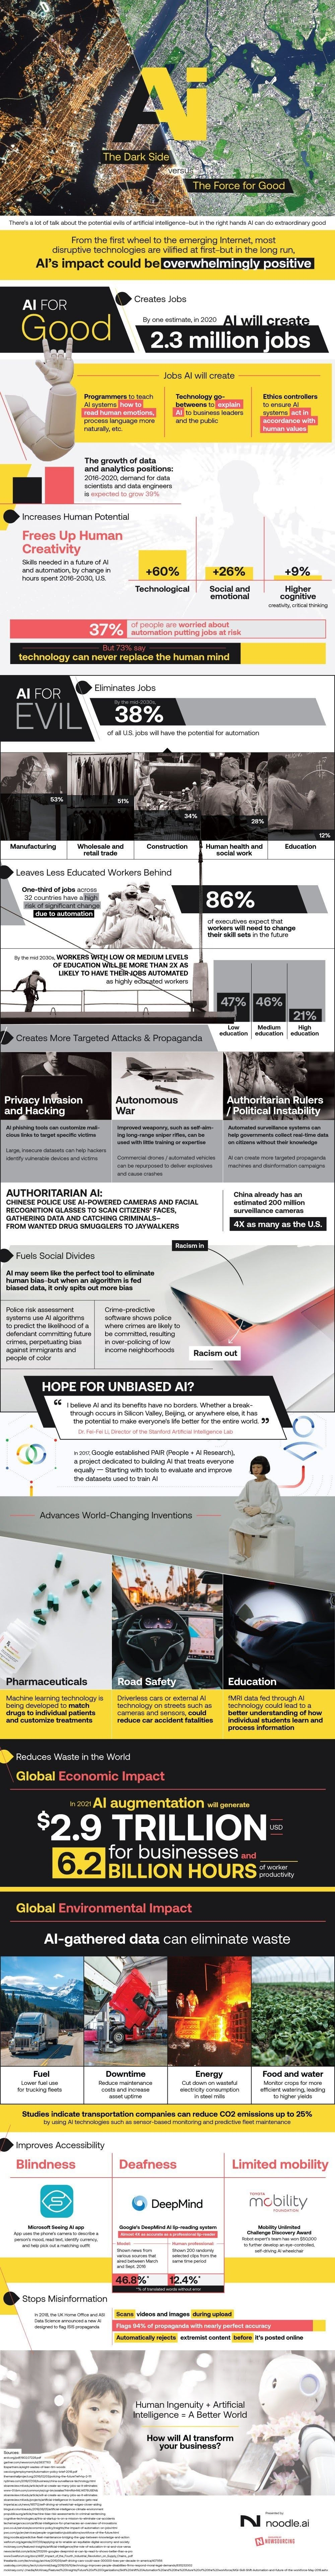 AI for evil vs AI for good The future is right now #infographic